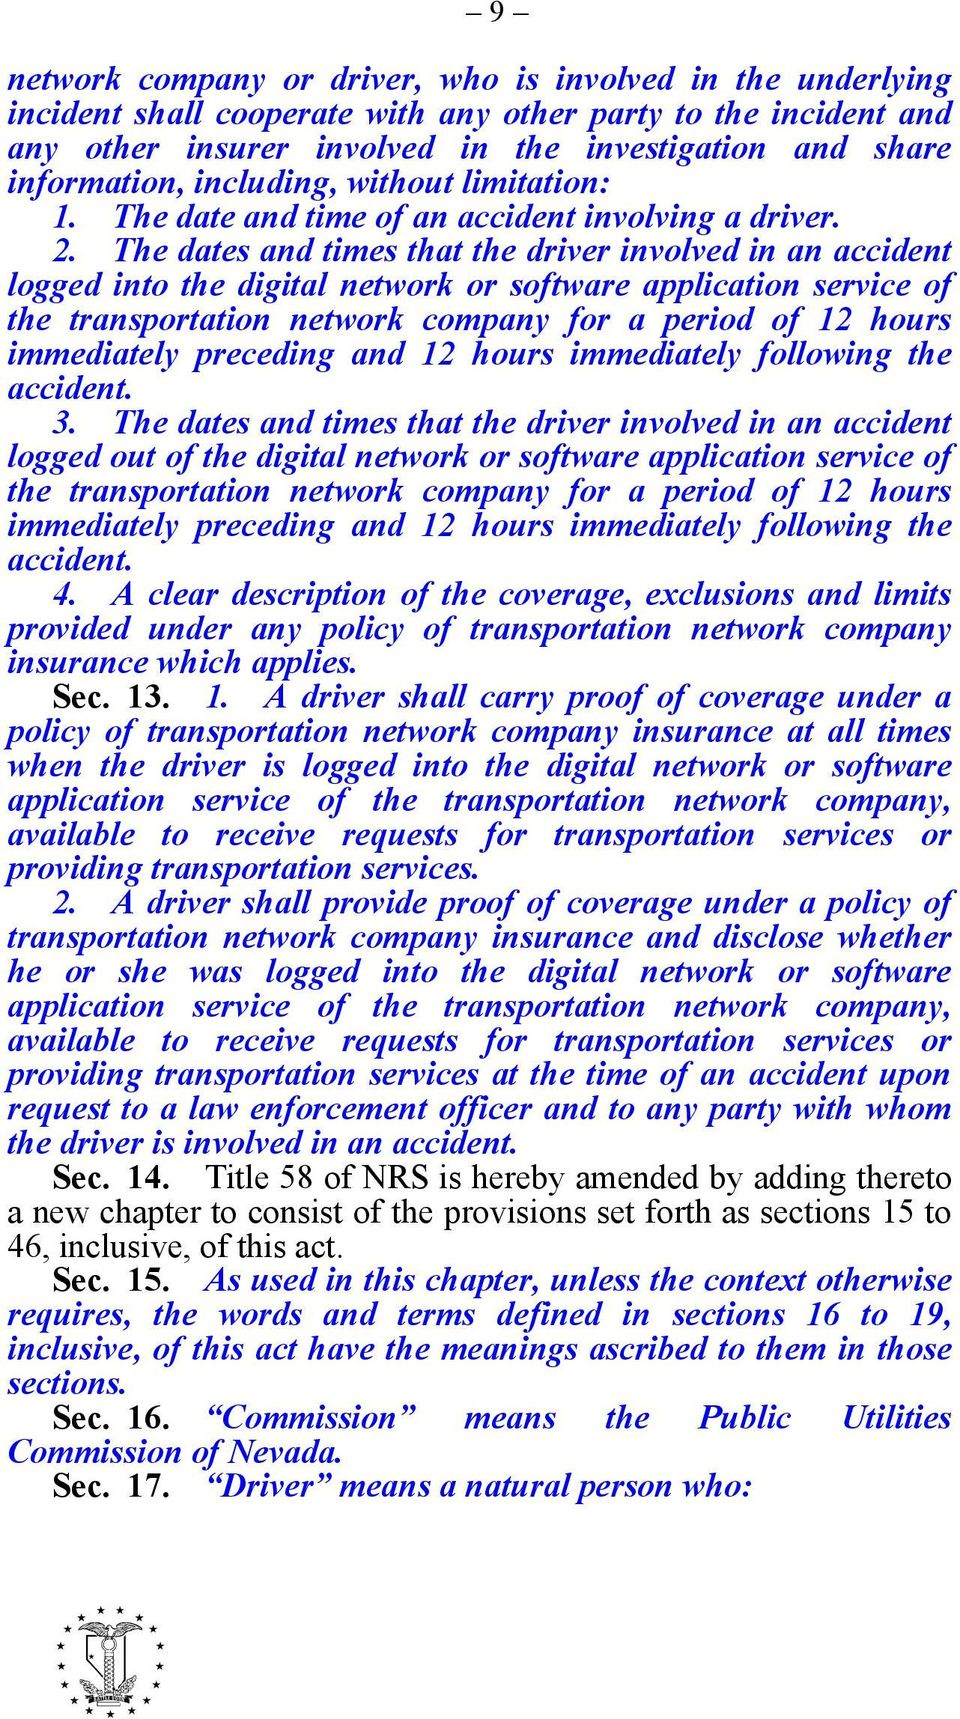 The dates and times that the driver involved in an accident logged into the digital network or software application service of the transportation network company for a period of 12 hours immediately